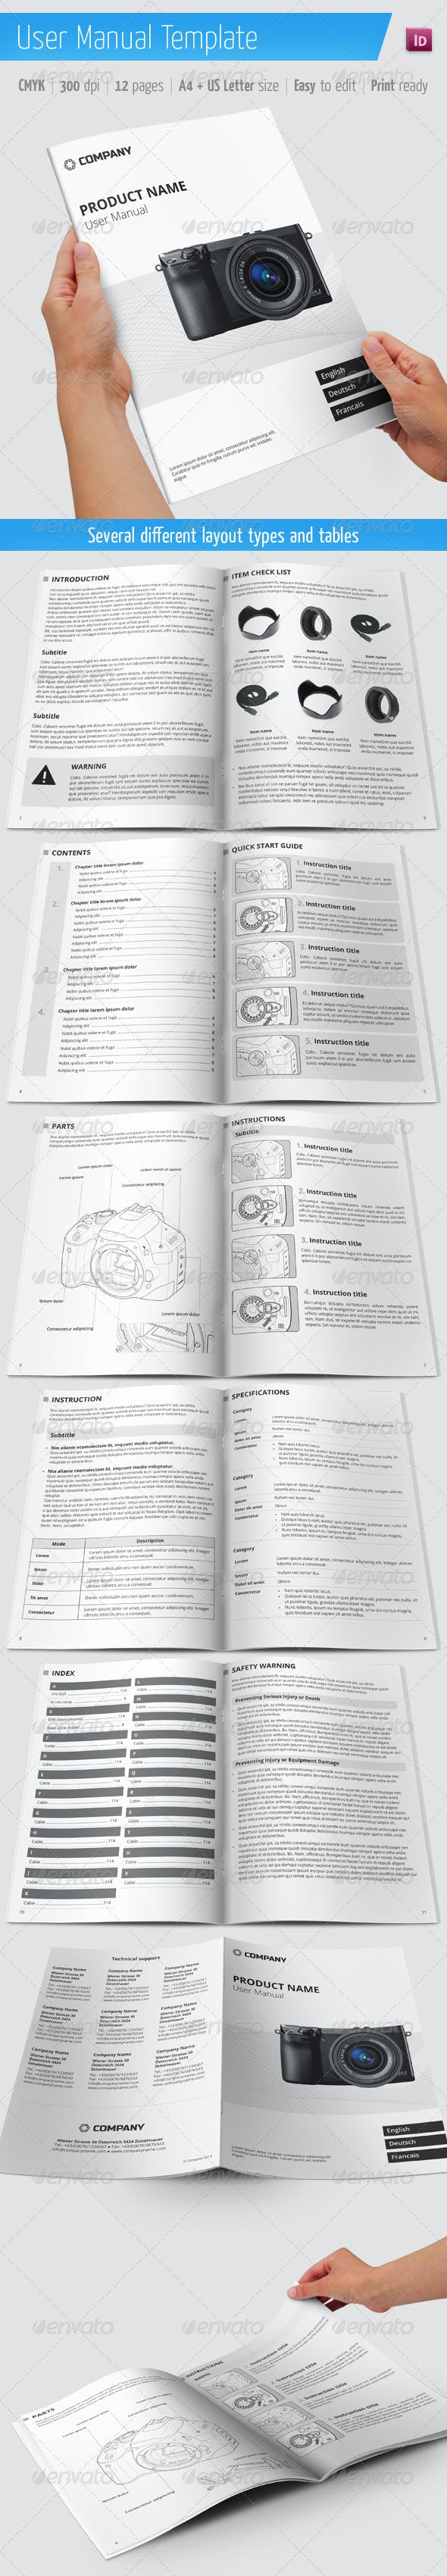 user manual template by camouslav graphicriver